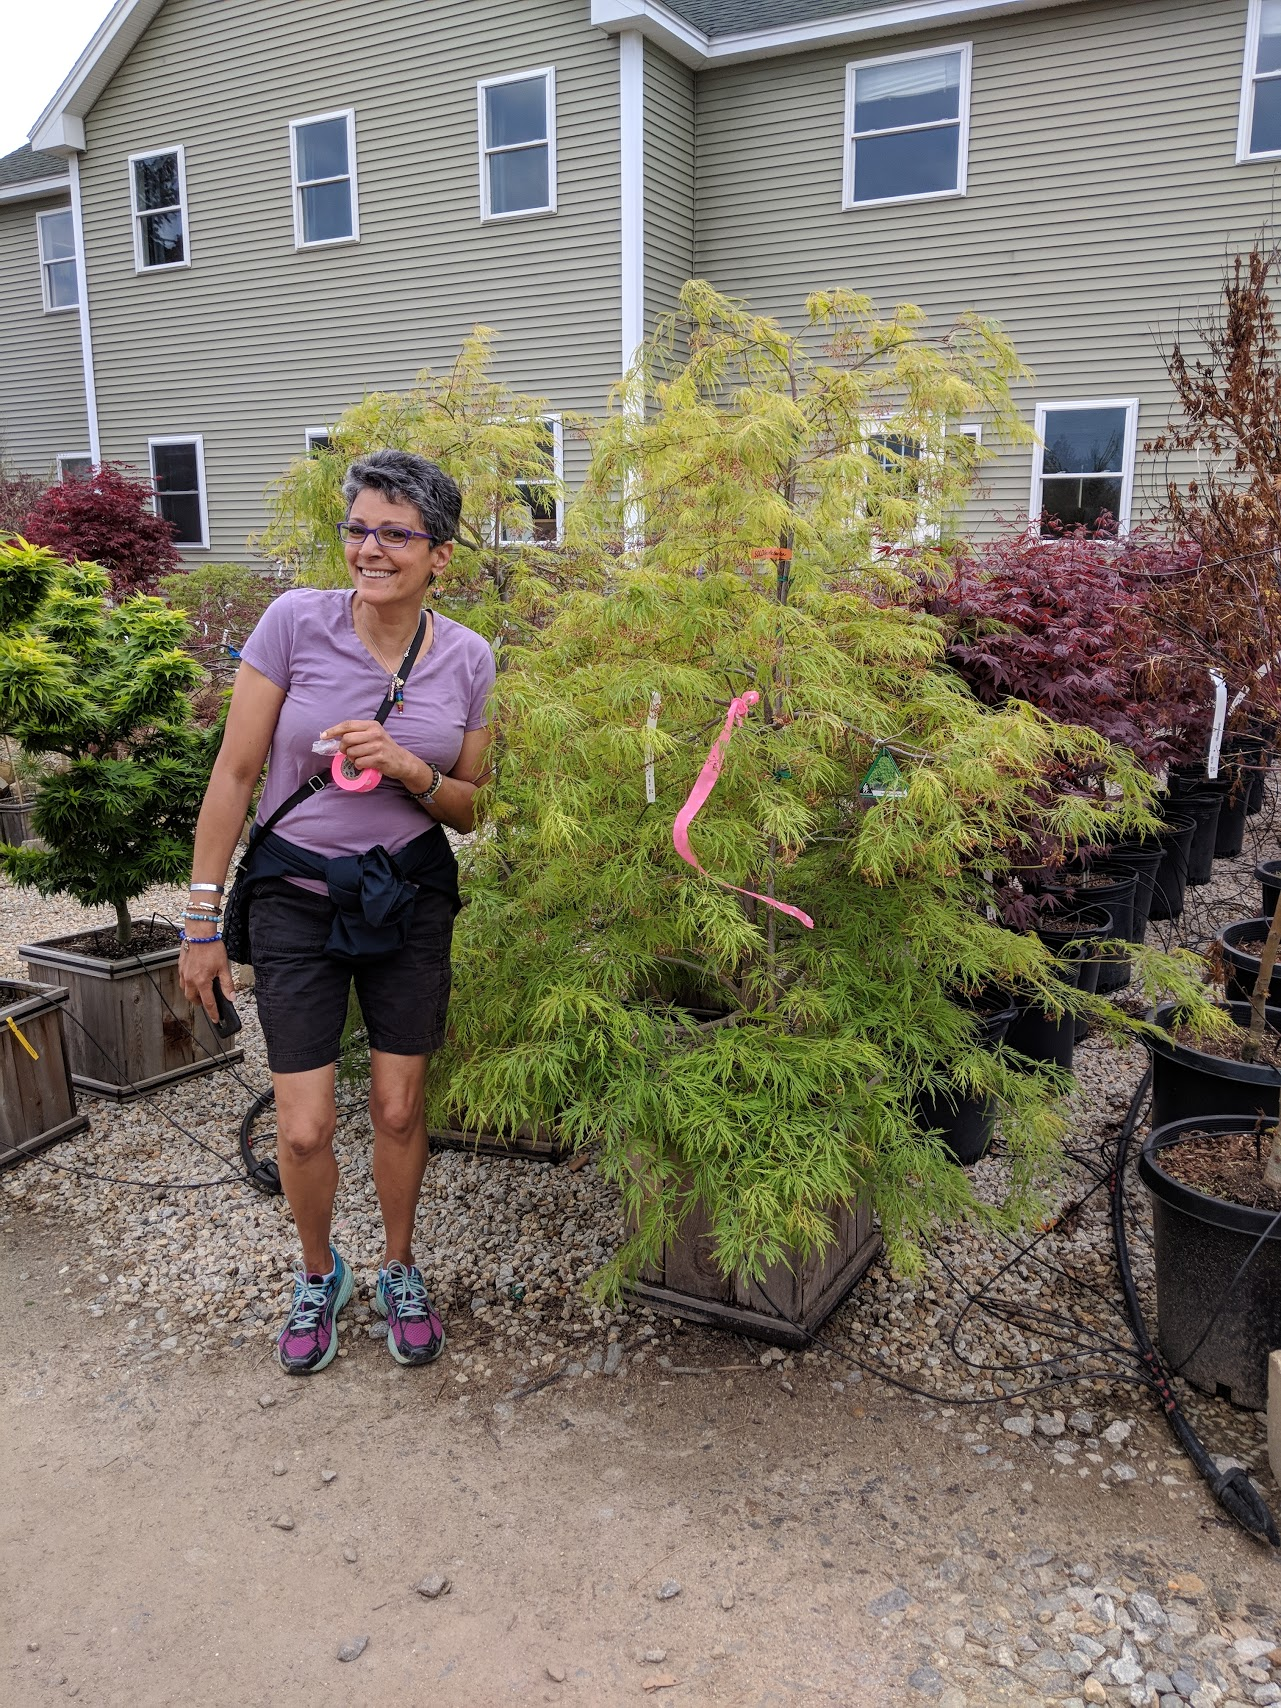 We both fell in love with this laceleaf Japanese Maple which is just perfect for our entrance.